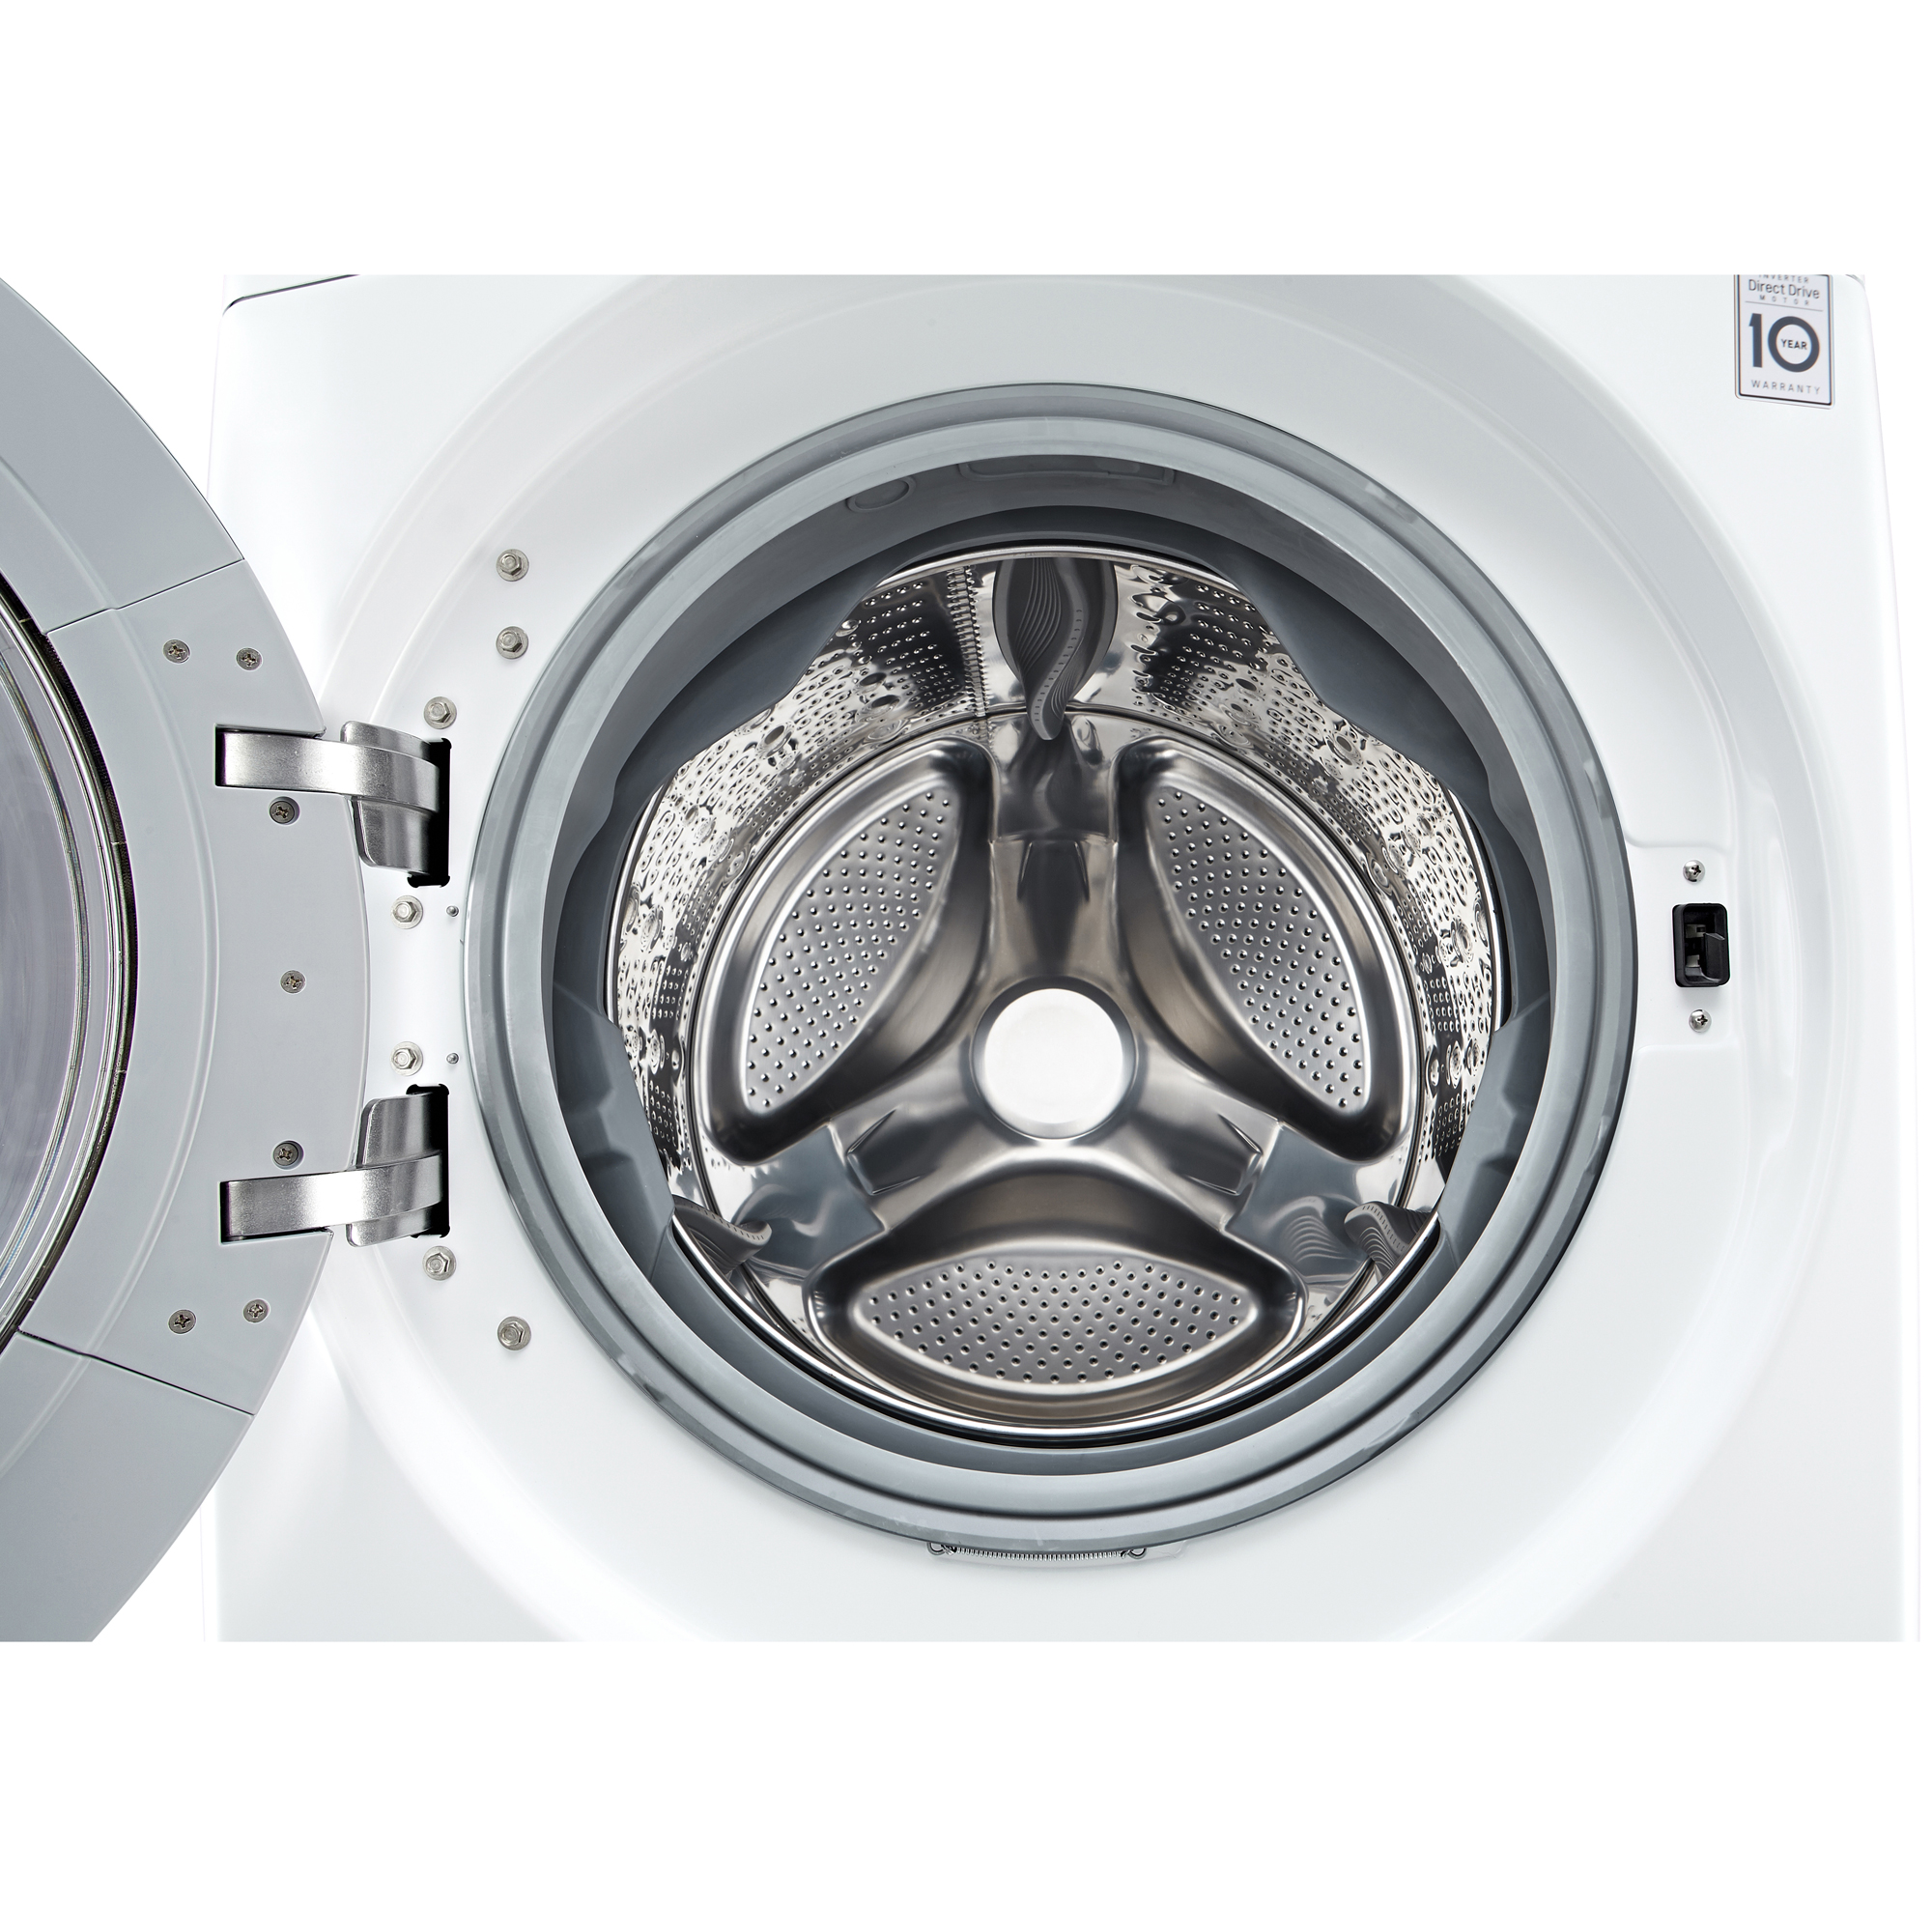 LG WM3370HWA 4.3 cu. ft. Ultra Large Capacity Front Load Washer w/ Steam – White